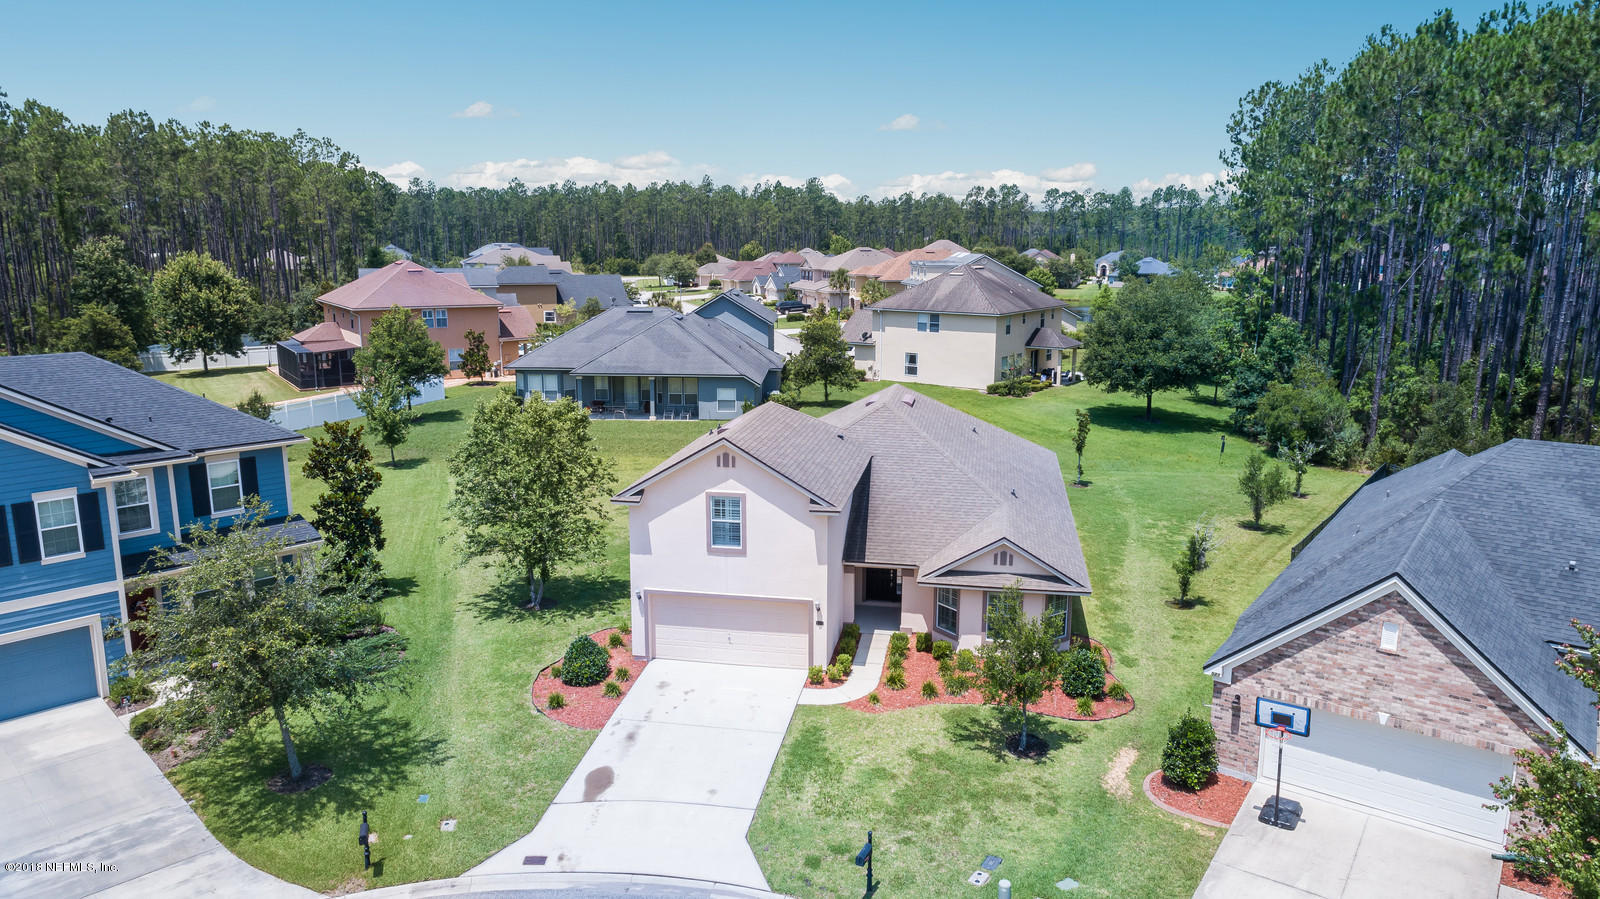 525 ABBOTSFORD, FRUIT COVE, FLORIDA 32259, 4 Bedrooms Bedrooms, ,2 BathroomsBathrooms,Residential - single family,For sale,ABBOTSFORD,943657